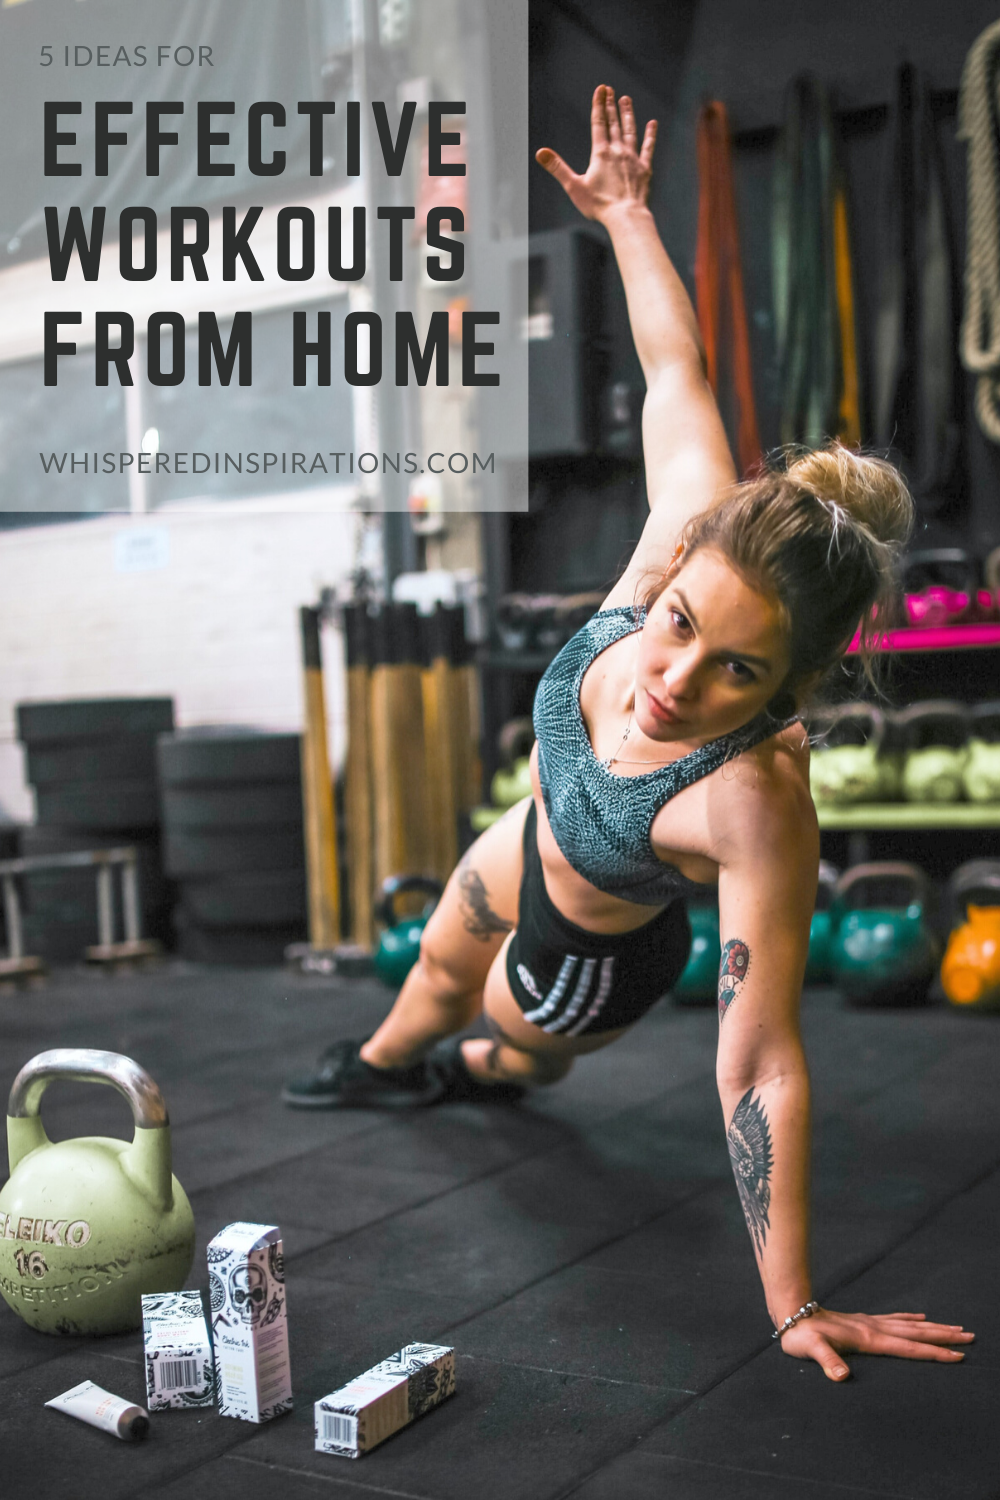 Woman is working out in her home gym. It's possible to have effective workouts from work.